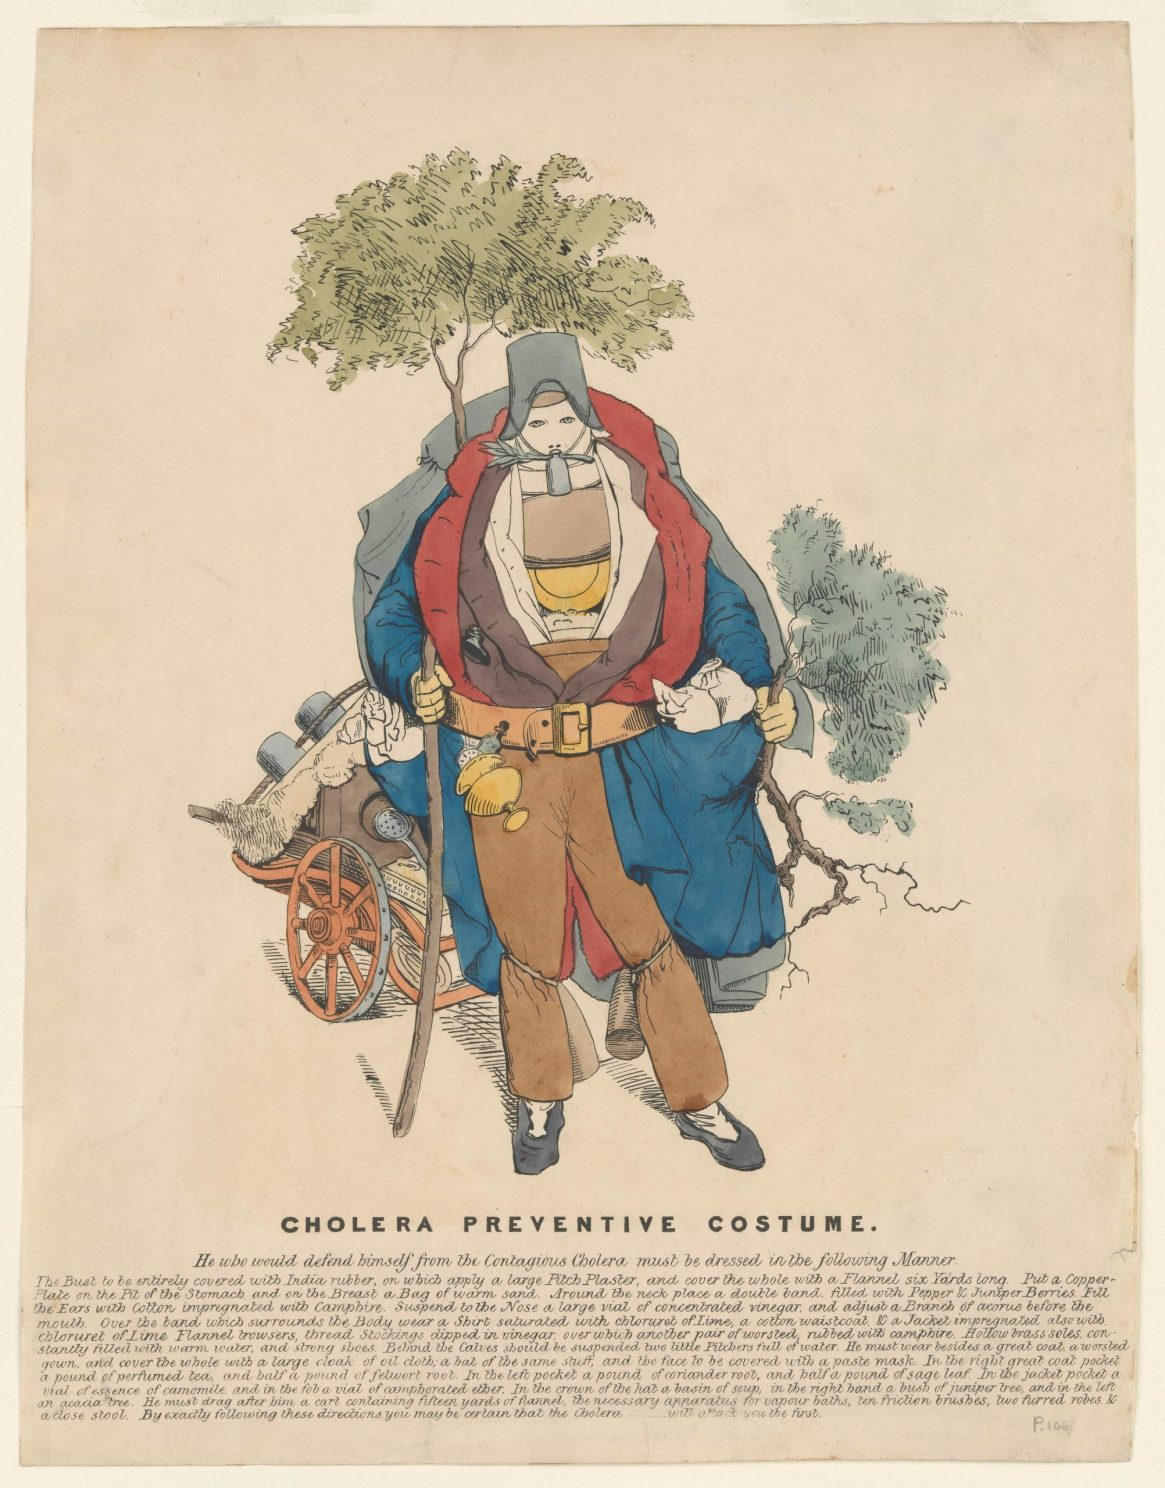 Cholera Preventive Costume, (1832), Publisher: Thomas McLean, Courtesy of Wellcome Collection